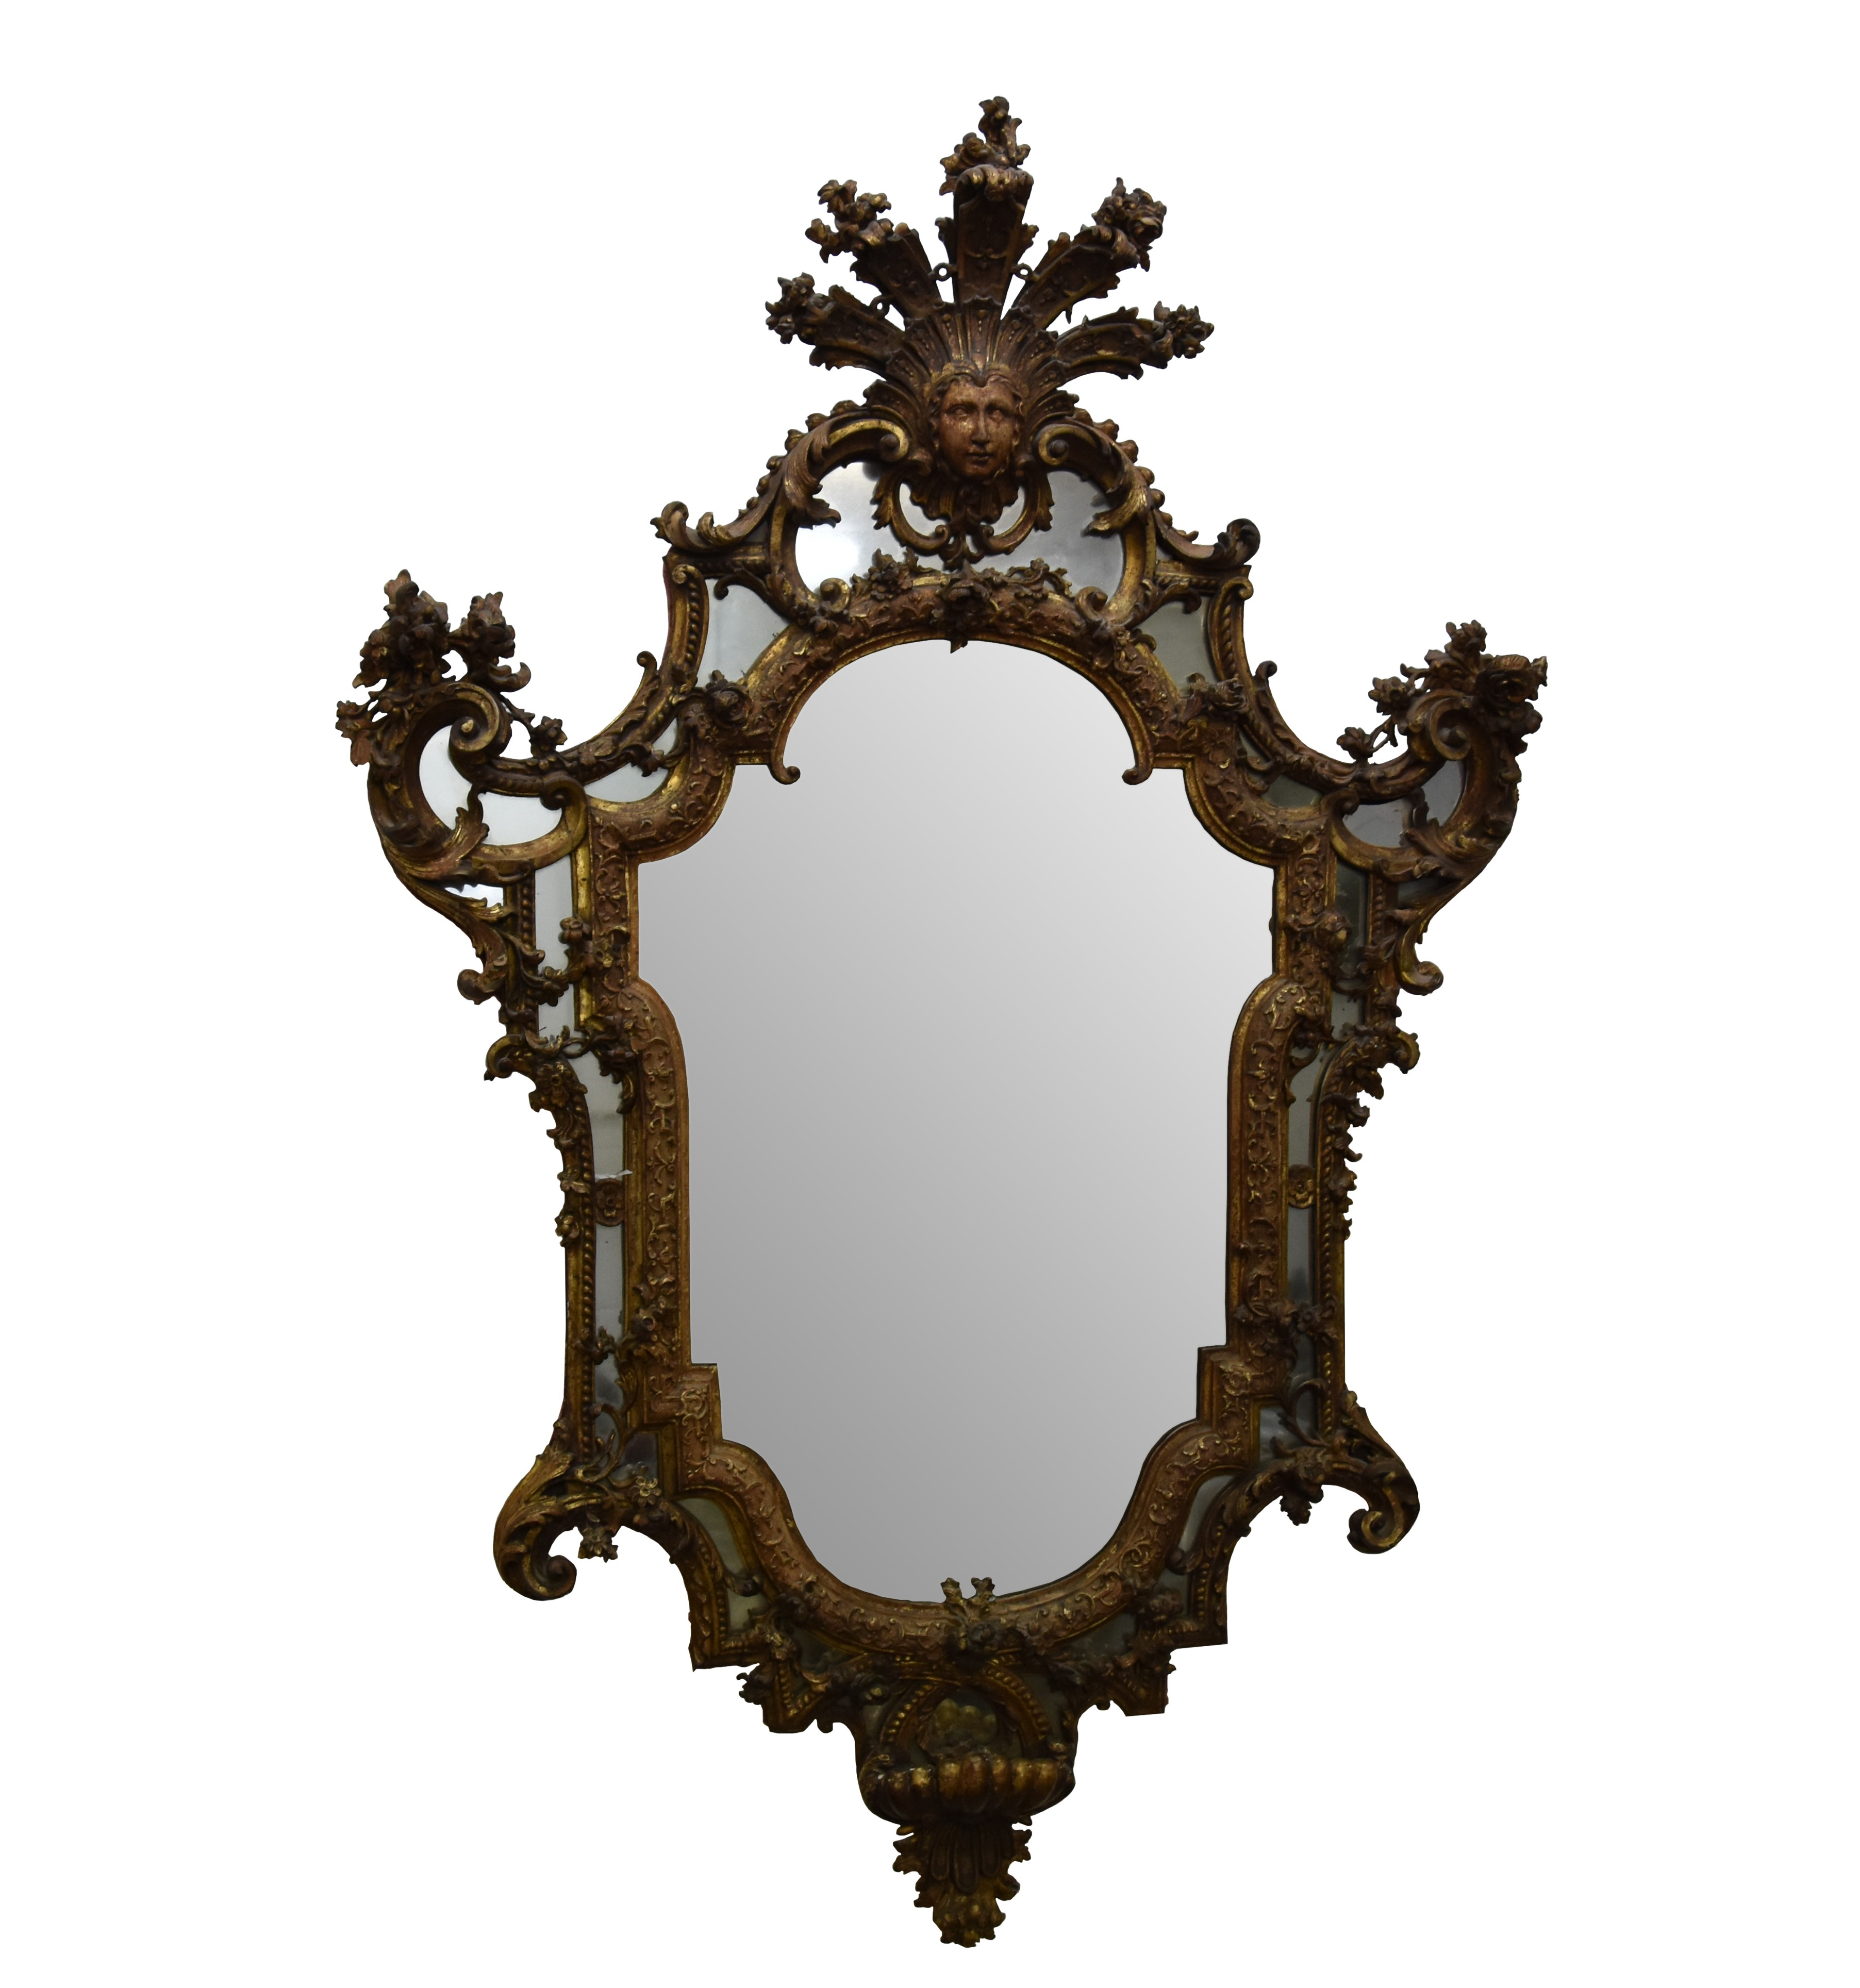 A French early 18th century Regence carved giltwood wall mirror, Circa 1745